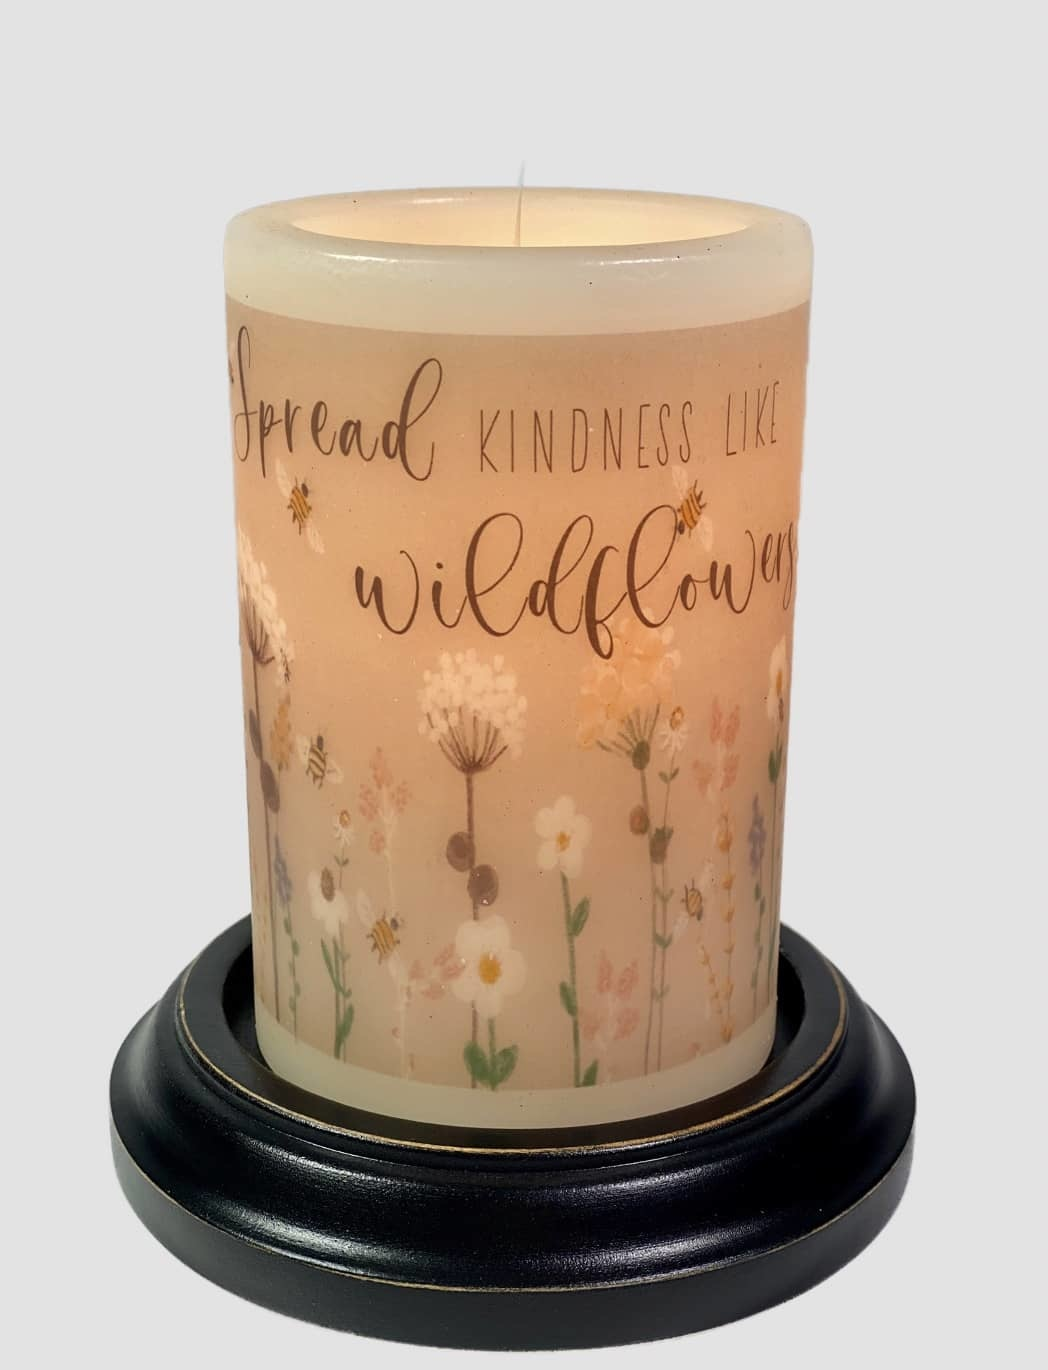 C R Designs Spread Kindness Candle Sleeve